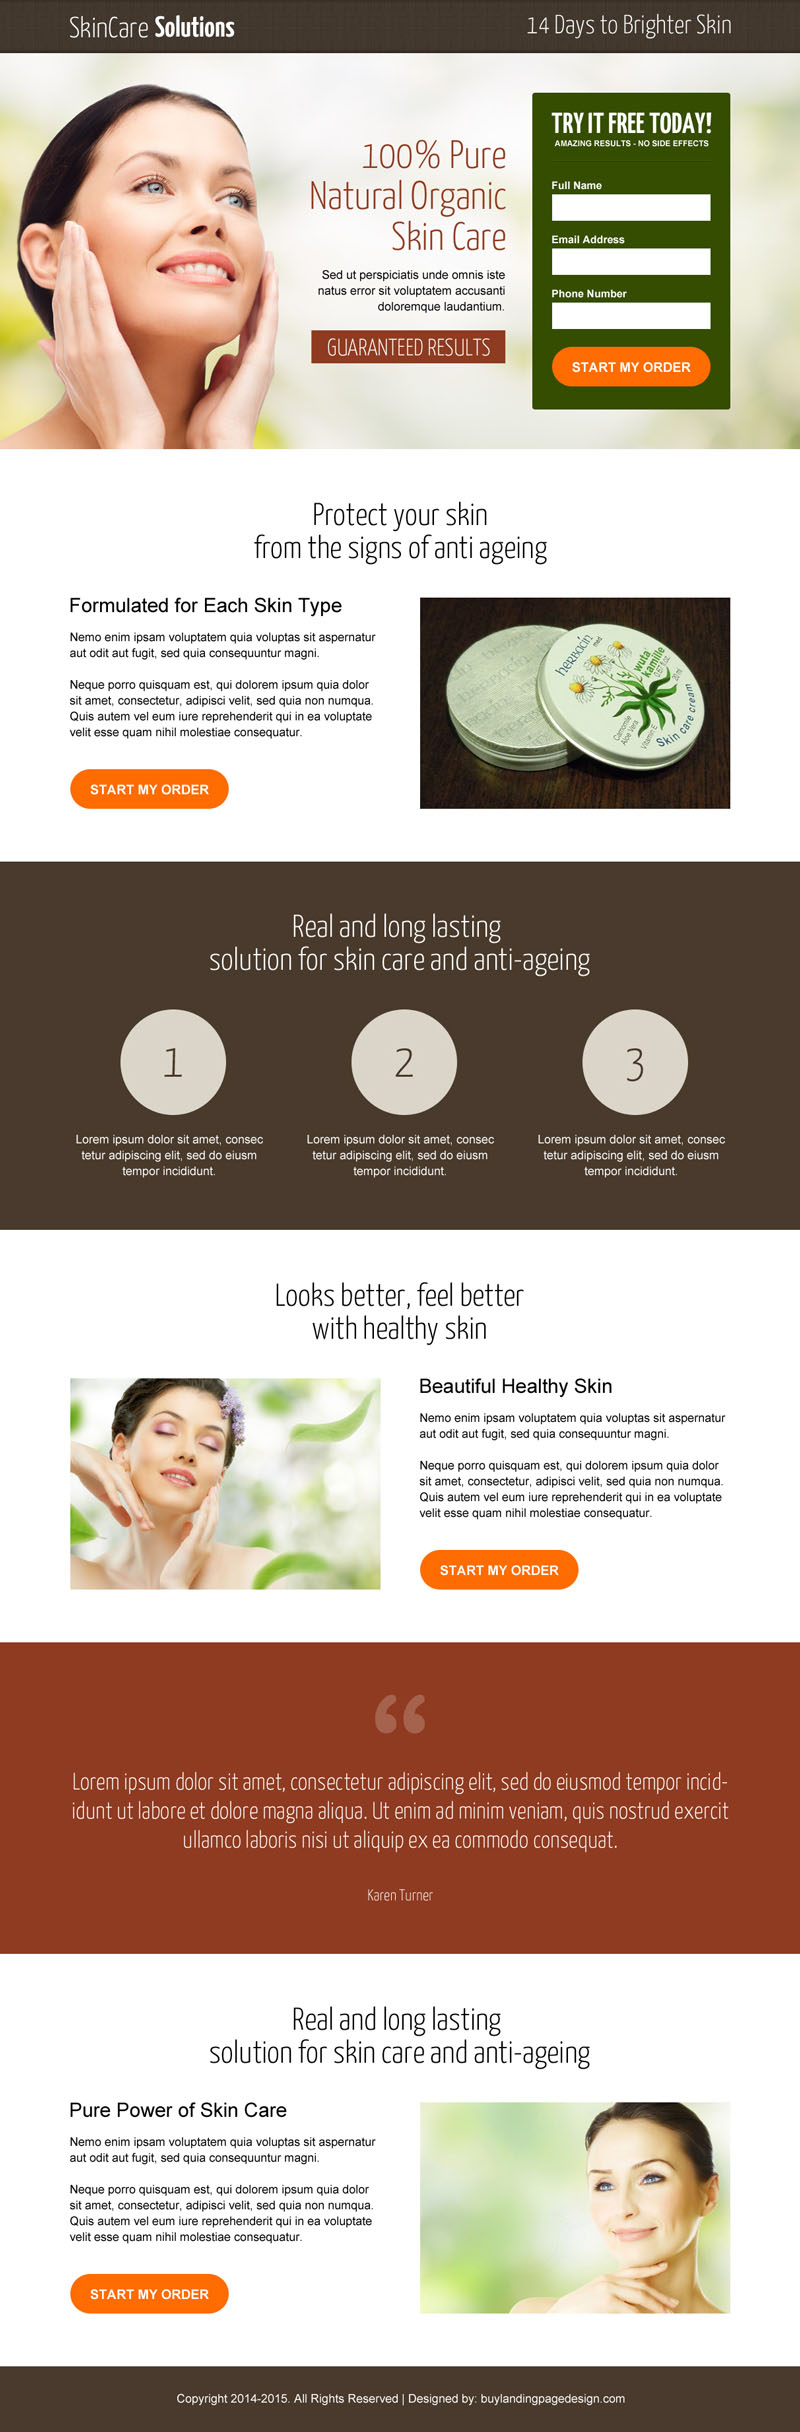 natural-organic-skin-care-product-selling-lead-generation-responsive-landing-page-design-template-003